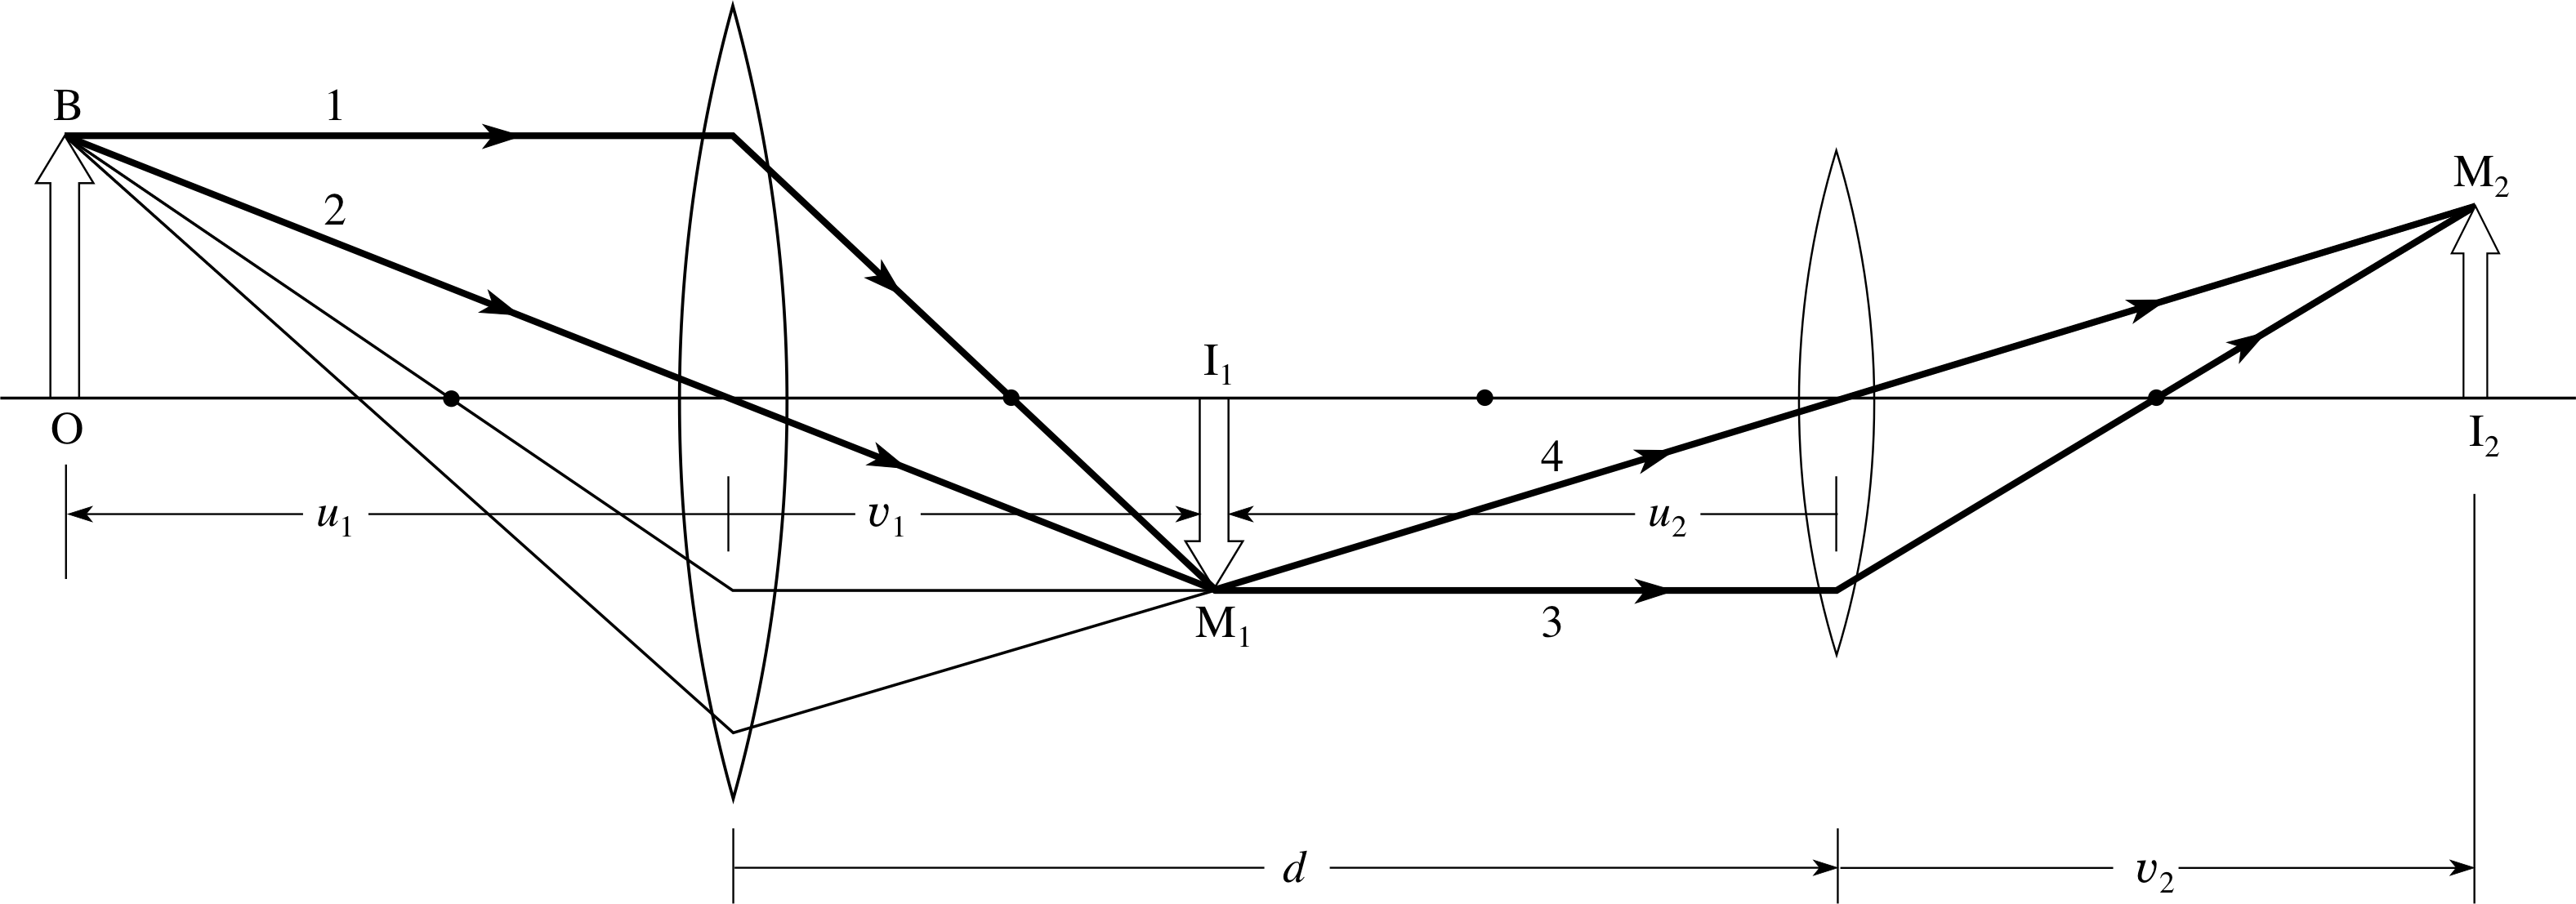 ray diagram lenses and mirrors